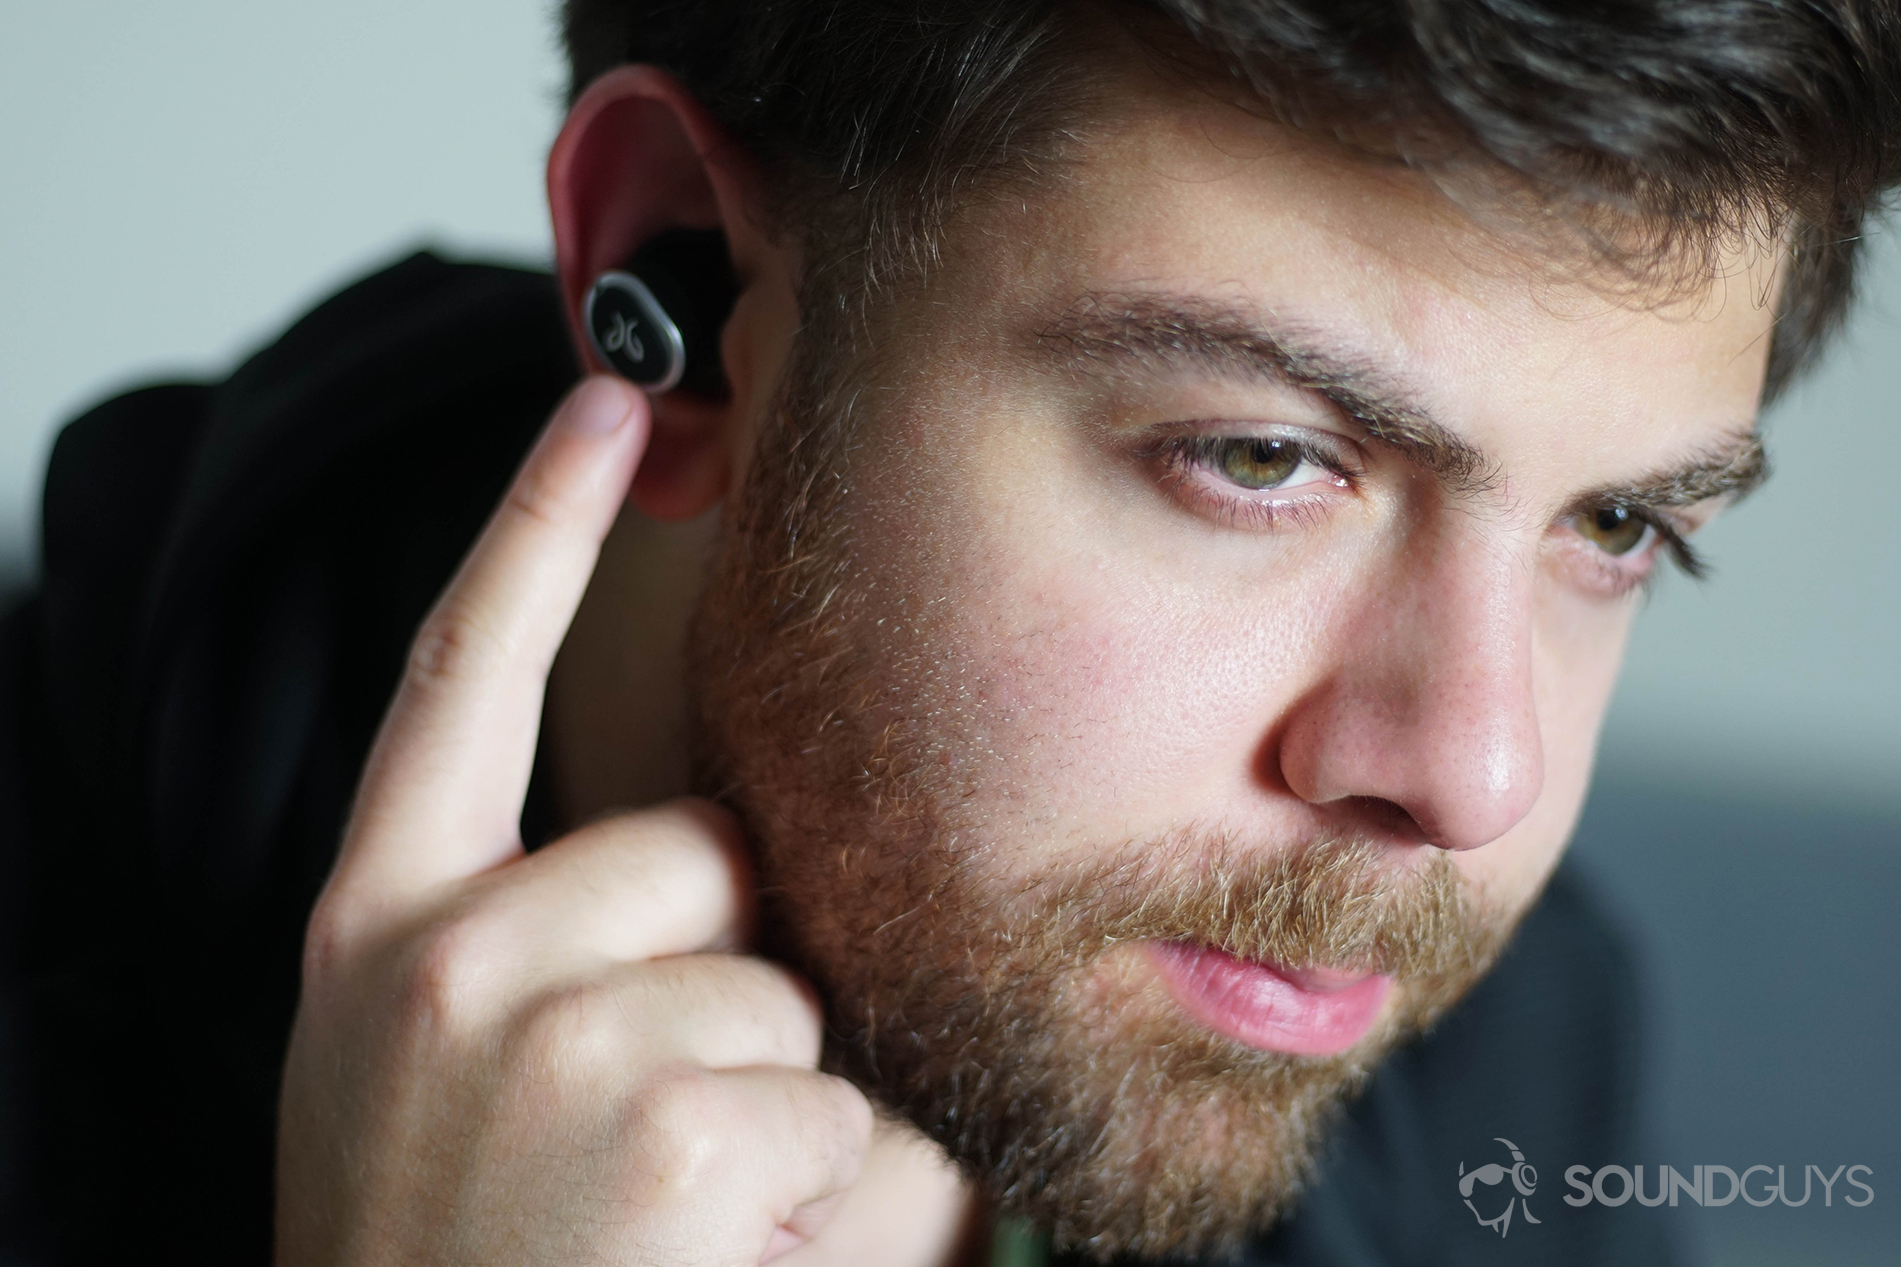 hight resolution of noise induced hearing loss what is it and how to prevent it